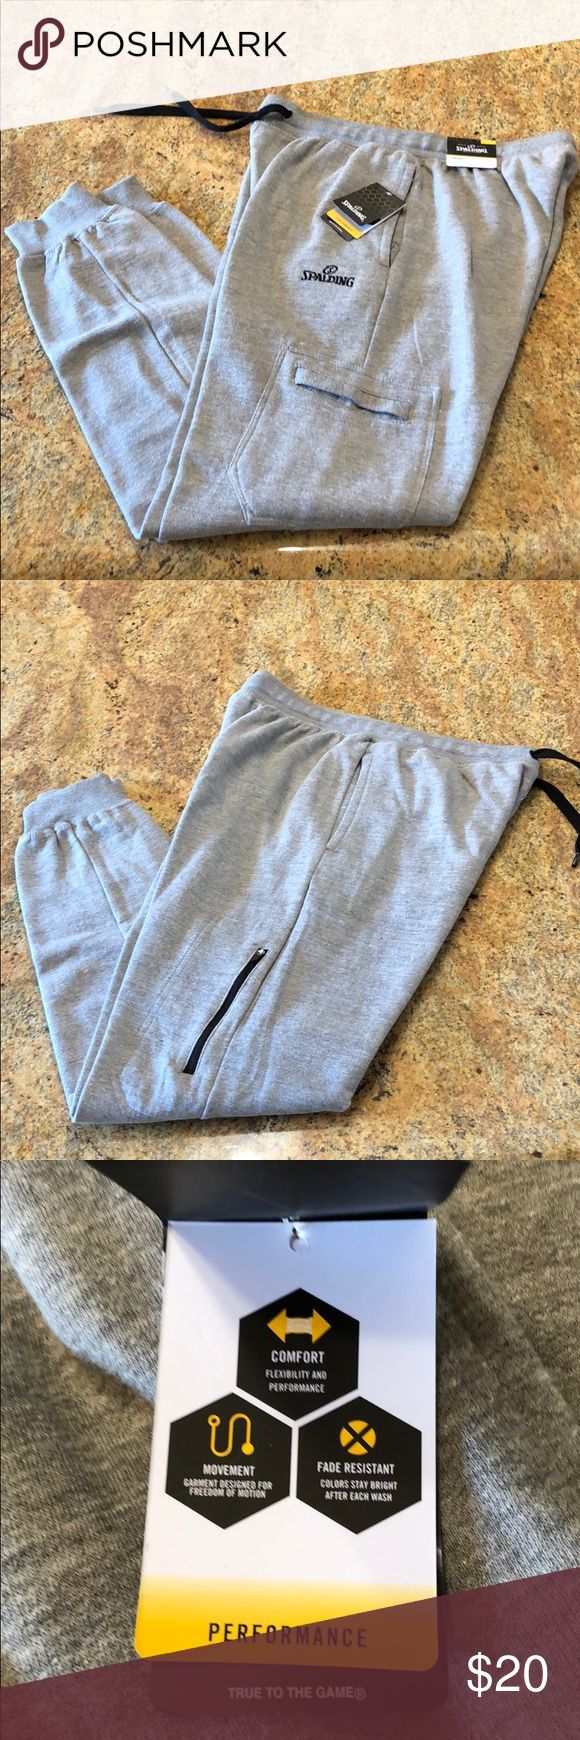 "NWT Spalding Joggers Men's heather grey joggers from Spalding. Cotton/Poly blend. Side pockets. Each leg also as a pocket- zippered pocket on side of right leg and slide pocket on side of left leg. Size large. Inseam 32.5"". New with tags. spalding Pants Sweatpants & Joggers"